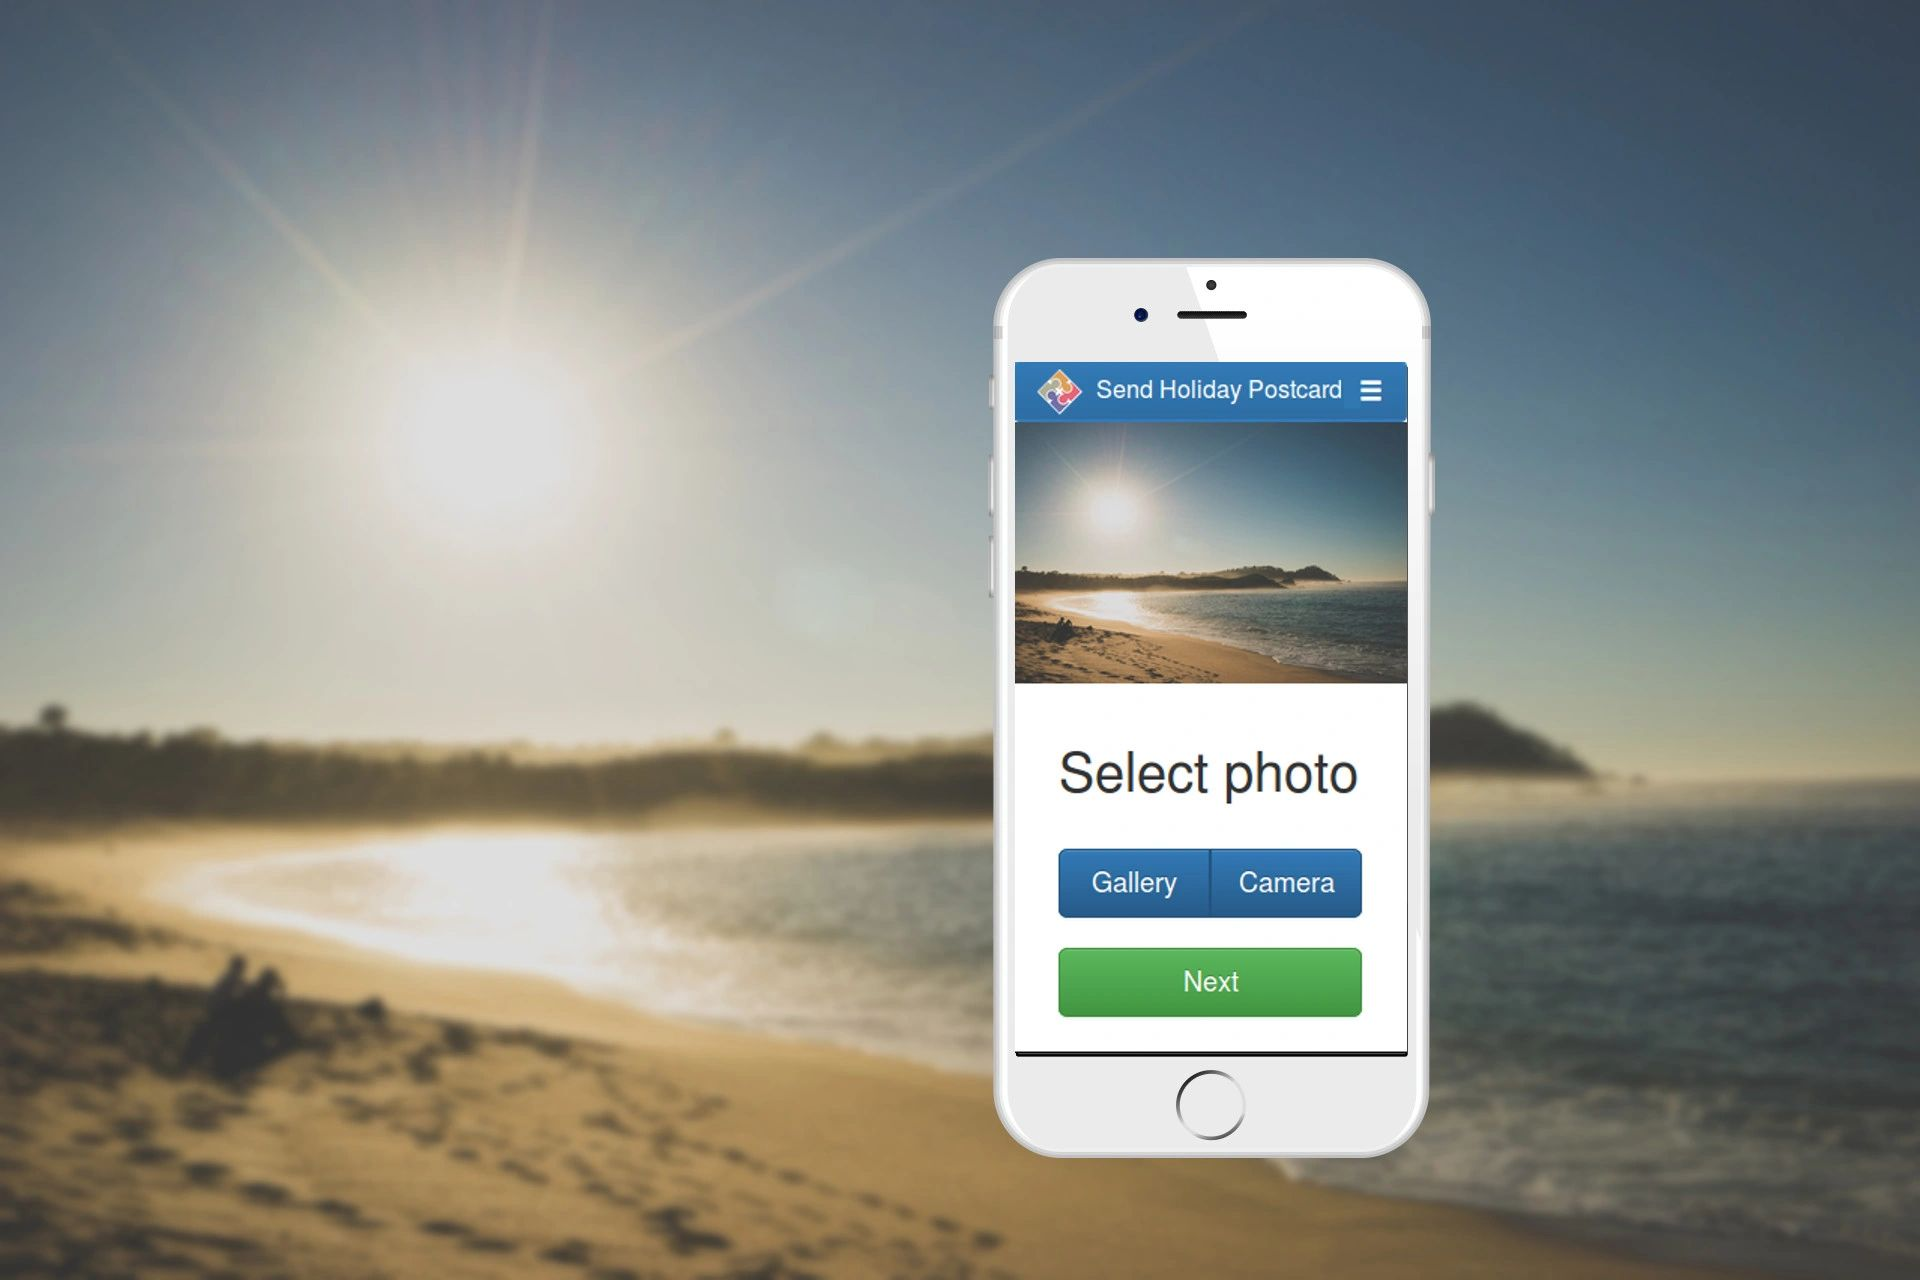 Send Holiday Postcard app is a PAYG Service for an iPhone, Android Phone, iPad,  Tablet or Computer.